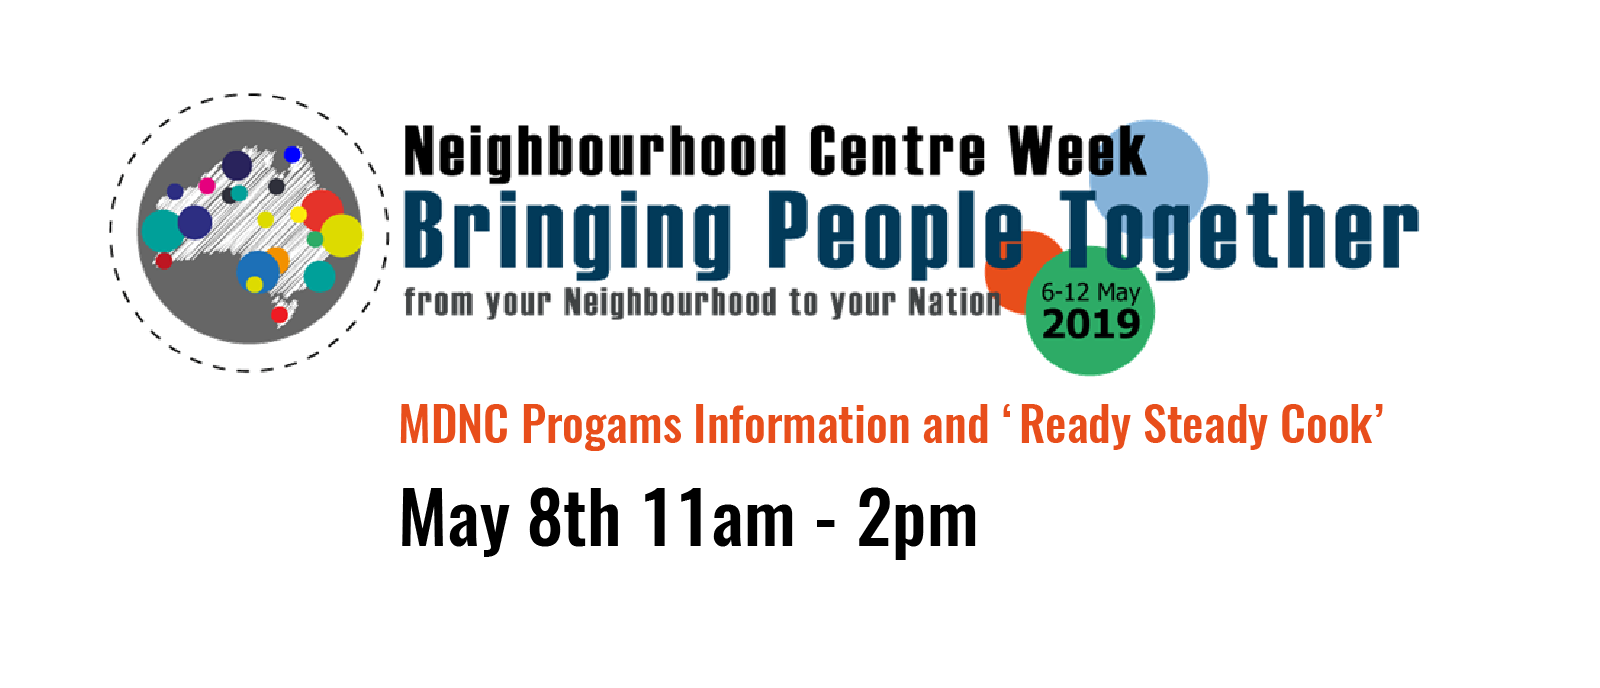 neighbourhood centre week Bringing people together Mullumbimby District Neighbourhood Centre 2019